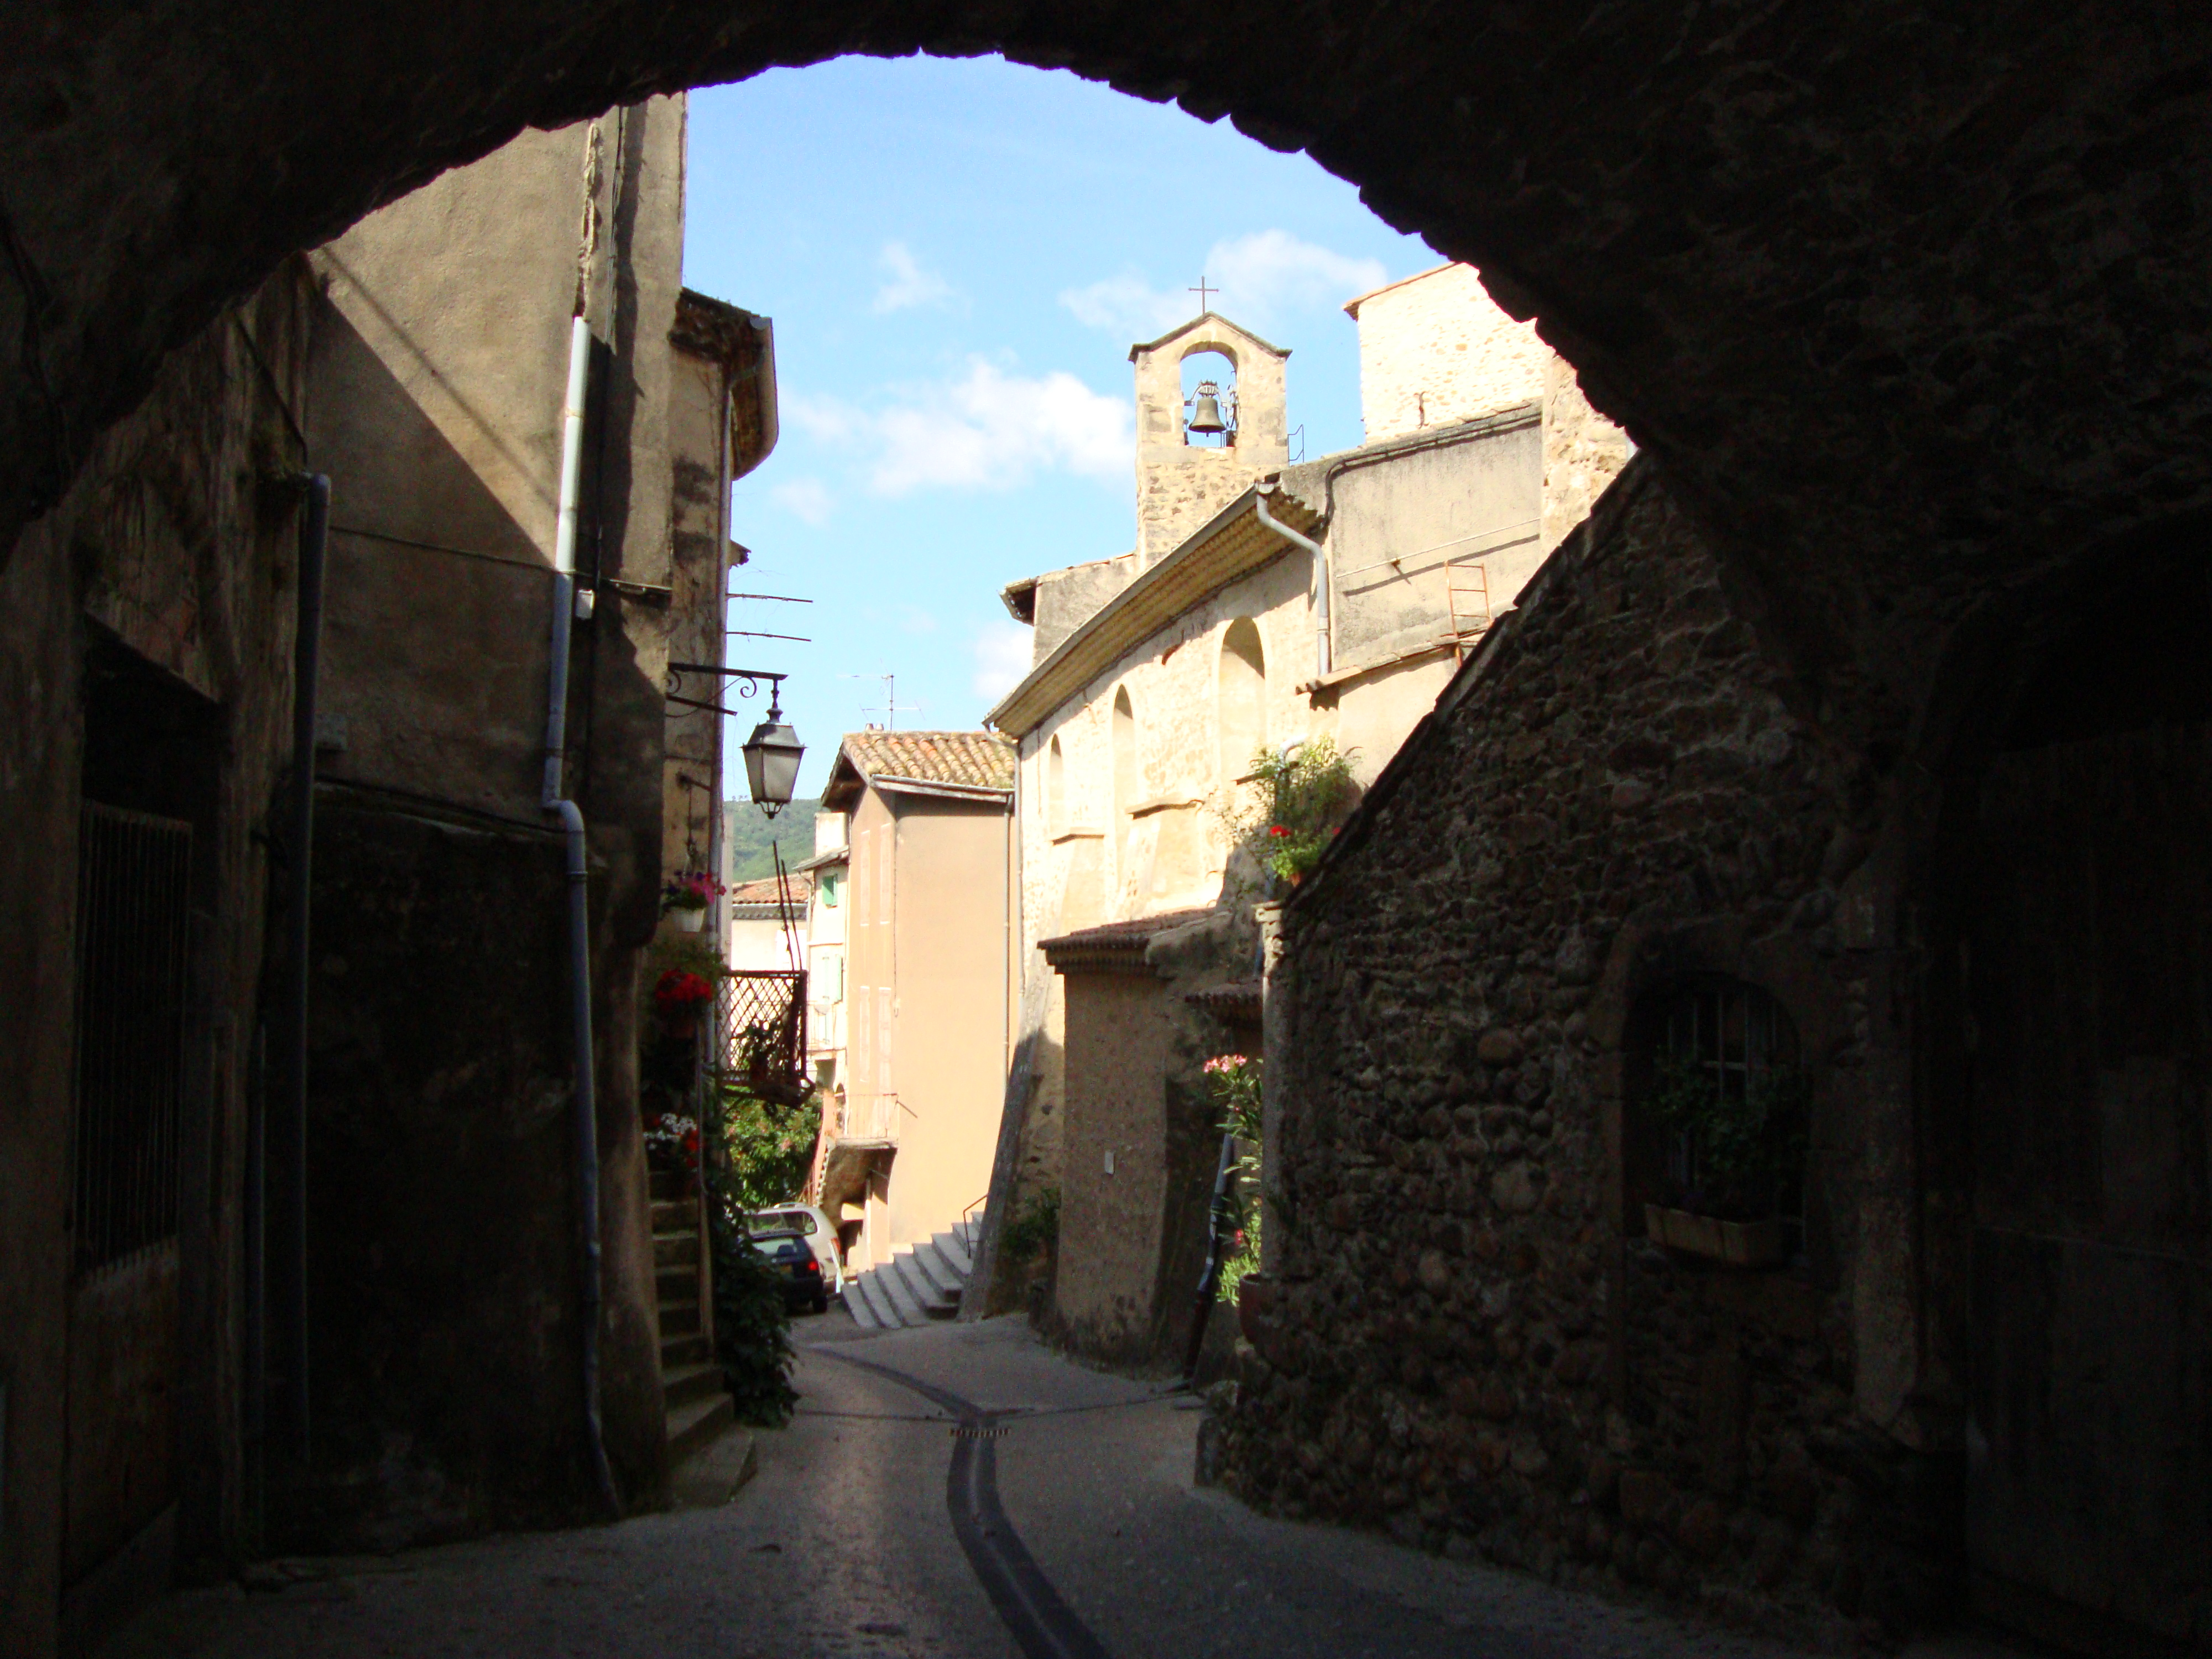 https://upload.wikimedia.org/wikipedia/commons/d/dc/Beauchastel_%28Ard%C3%A8che%2C_Fr%29_ruelle_avec_%C3%A9glise.JPG?uselang=fr